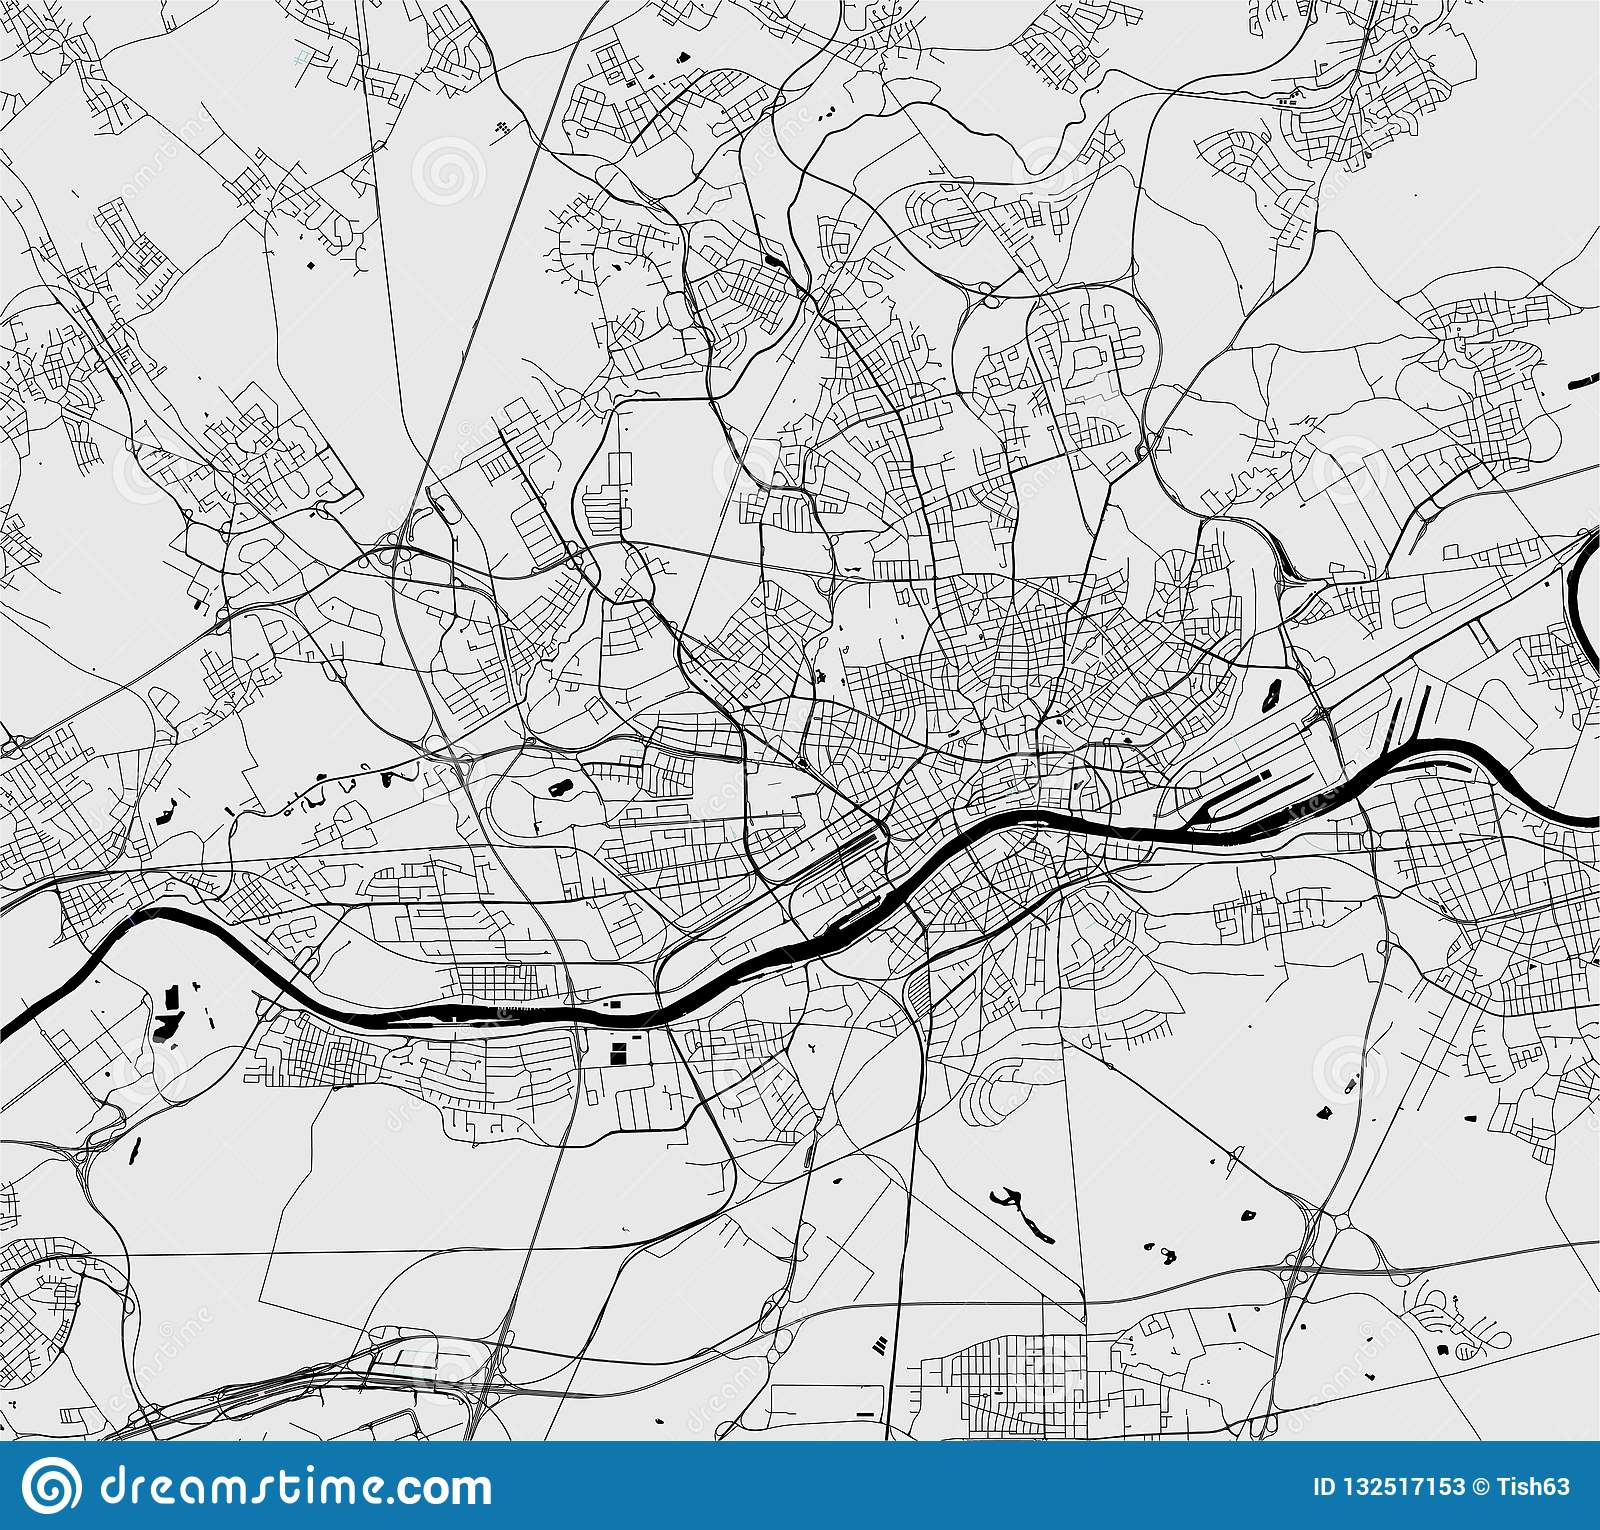 Map Of The City Of Frankfurt Am Main Hesse Germany Stock Vector